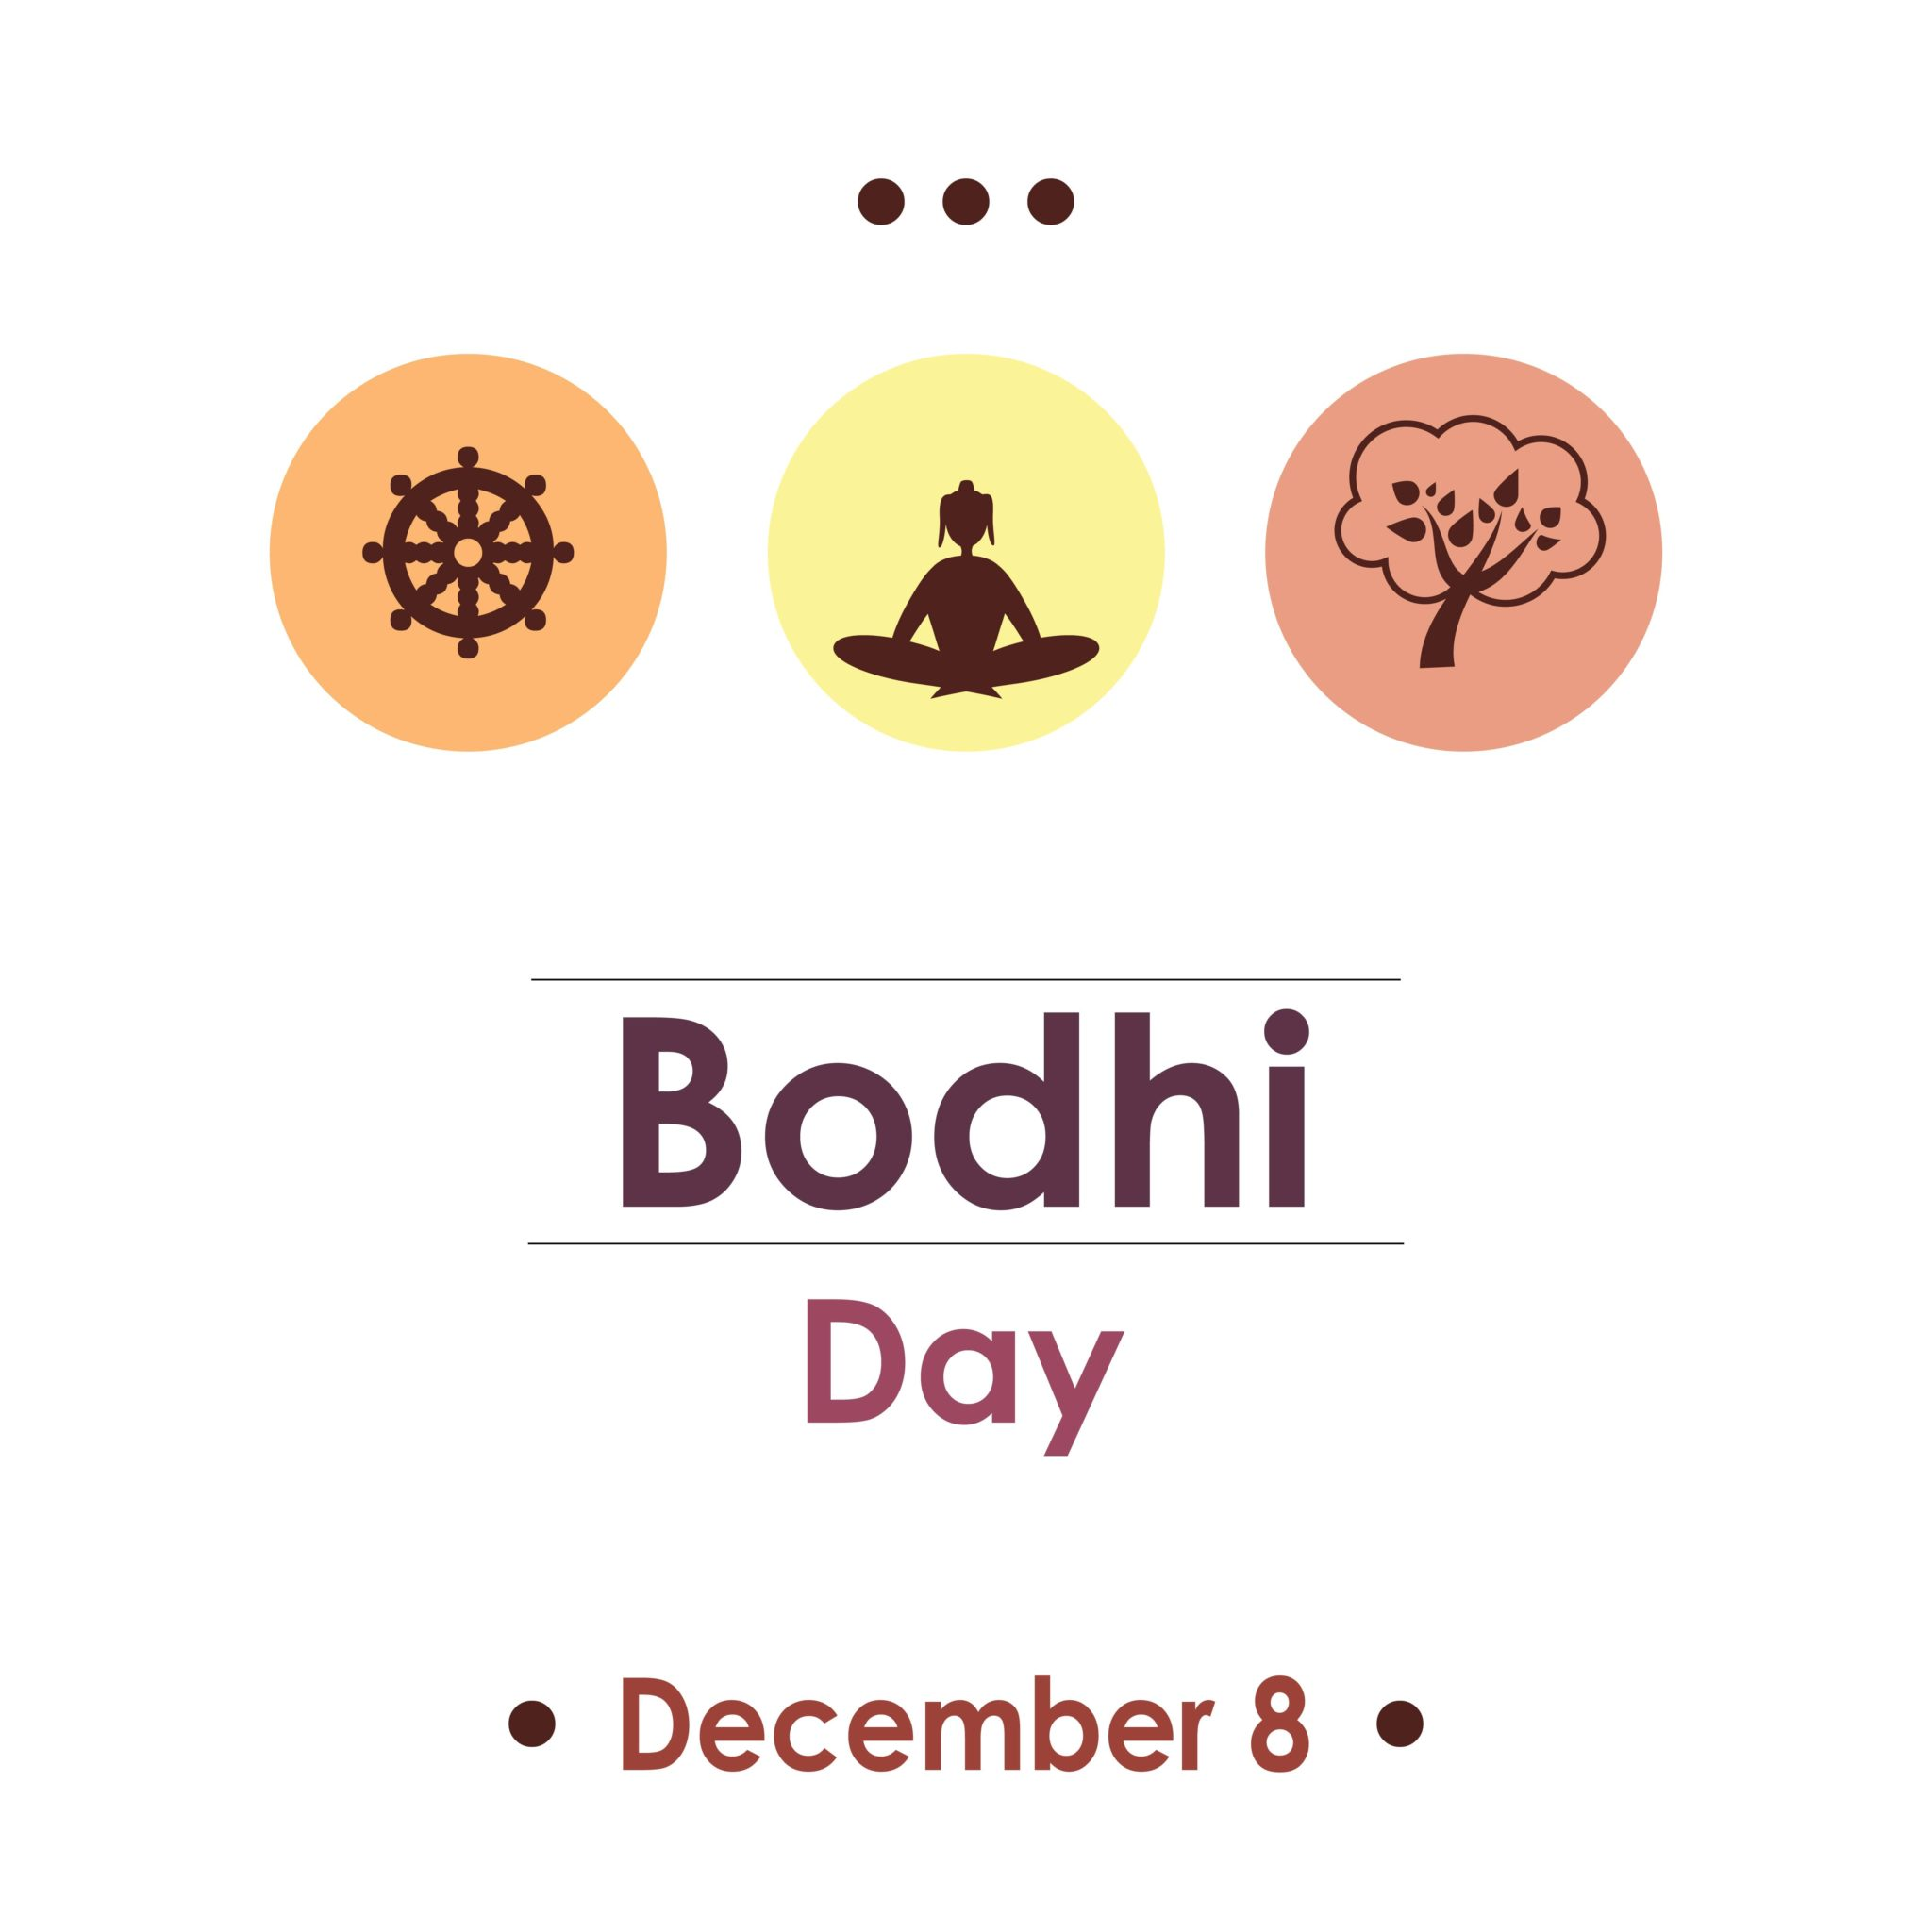 Bodhi Day a celebration of Buddha's enlightenment.